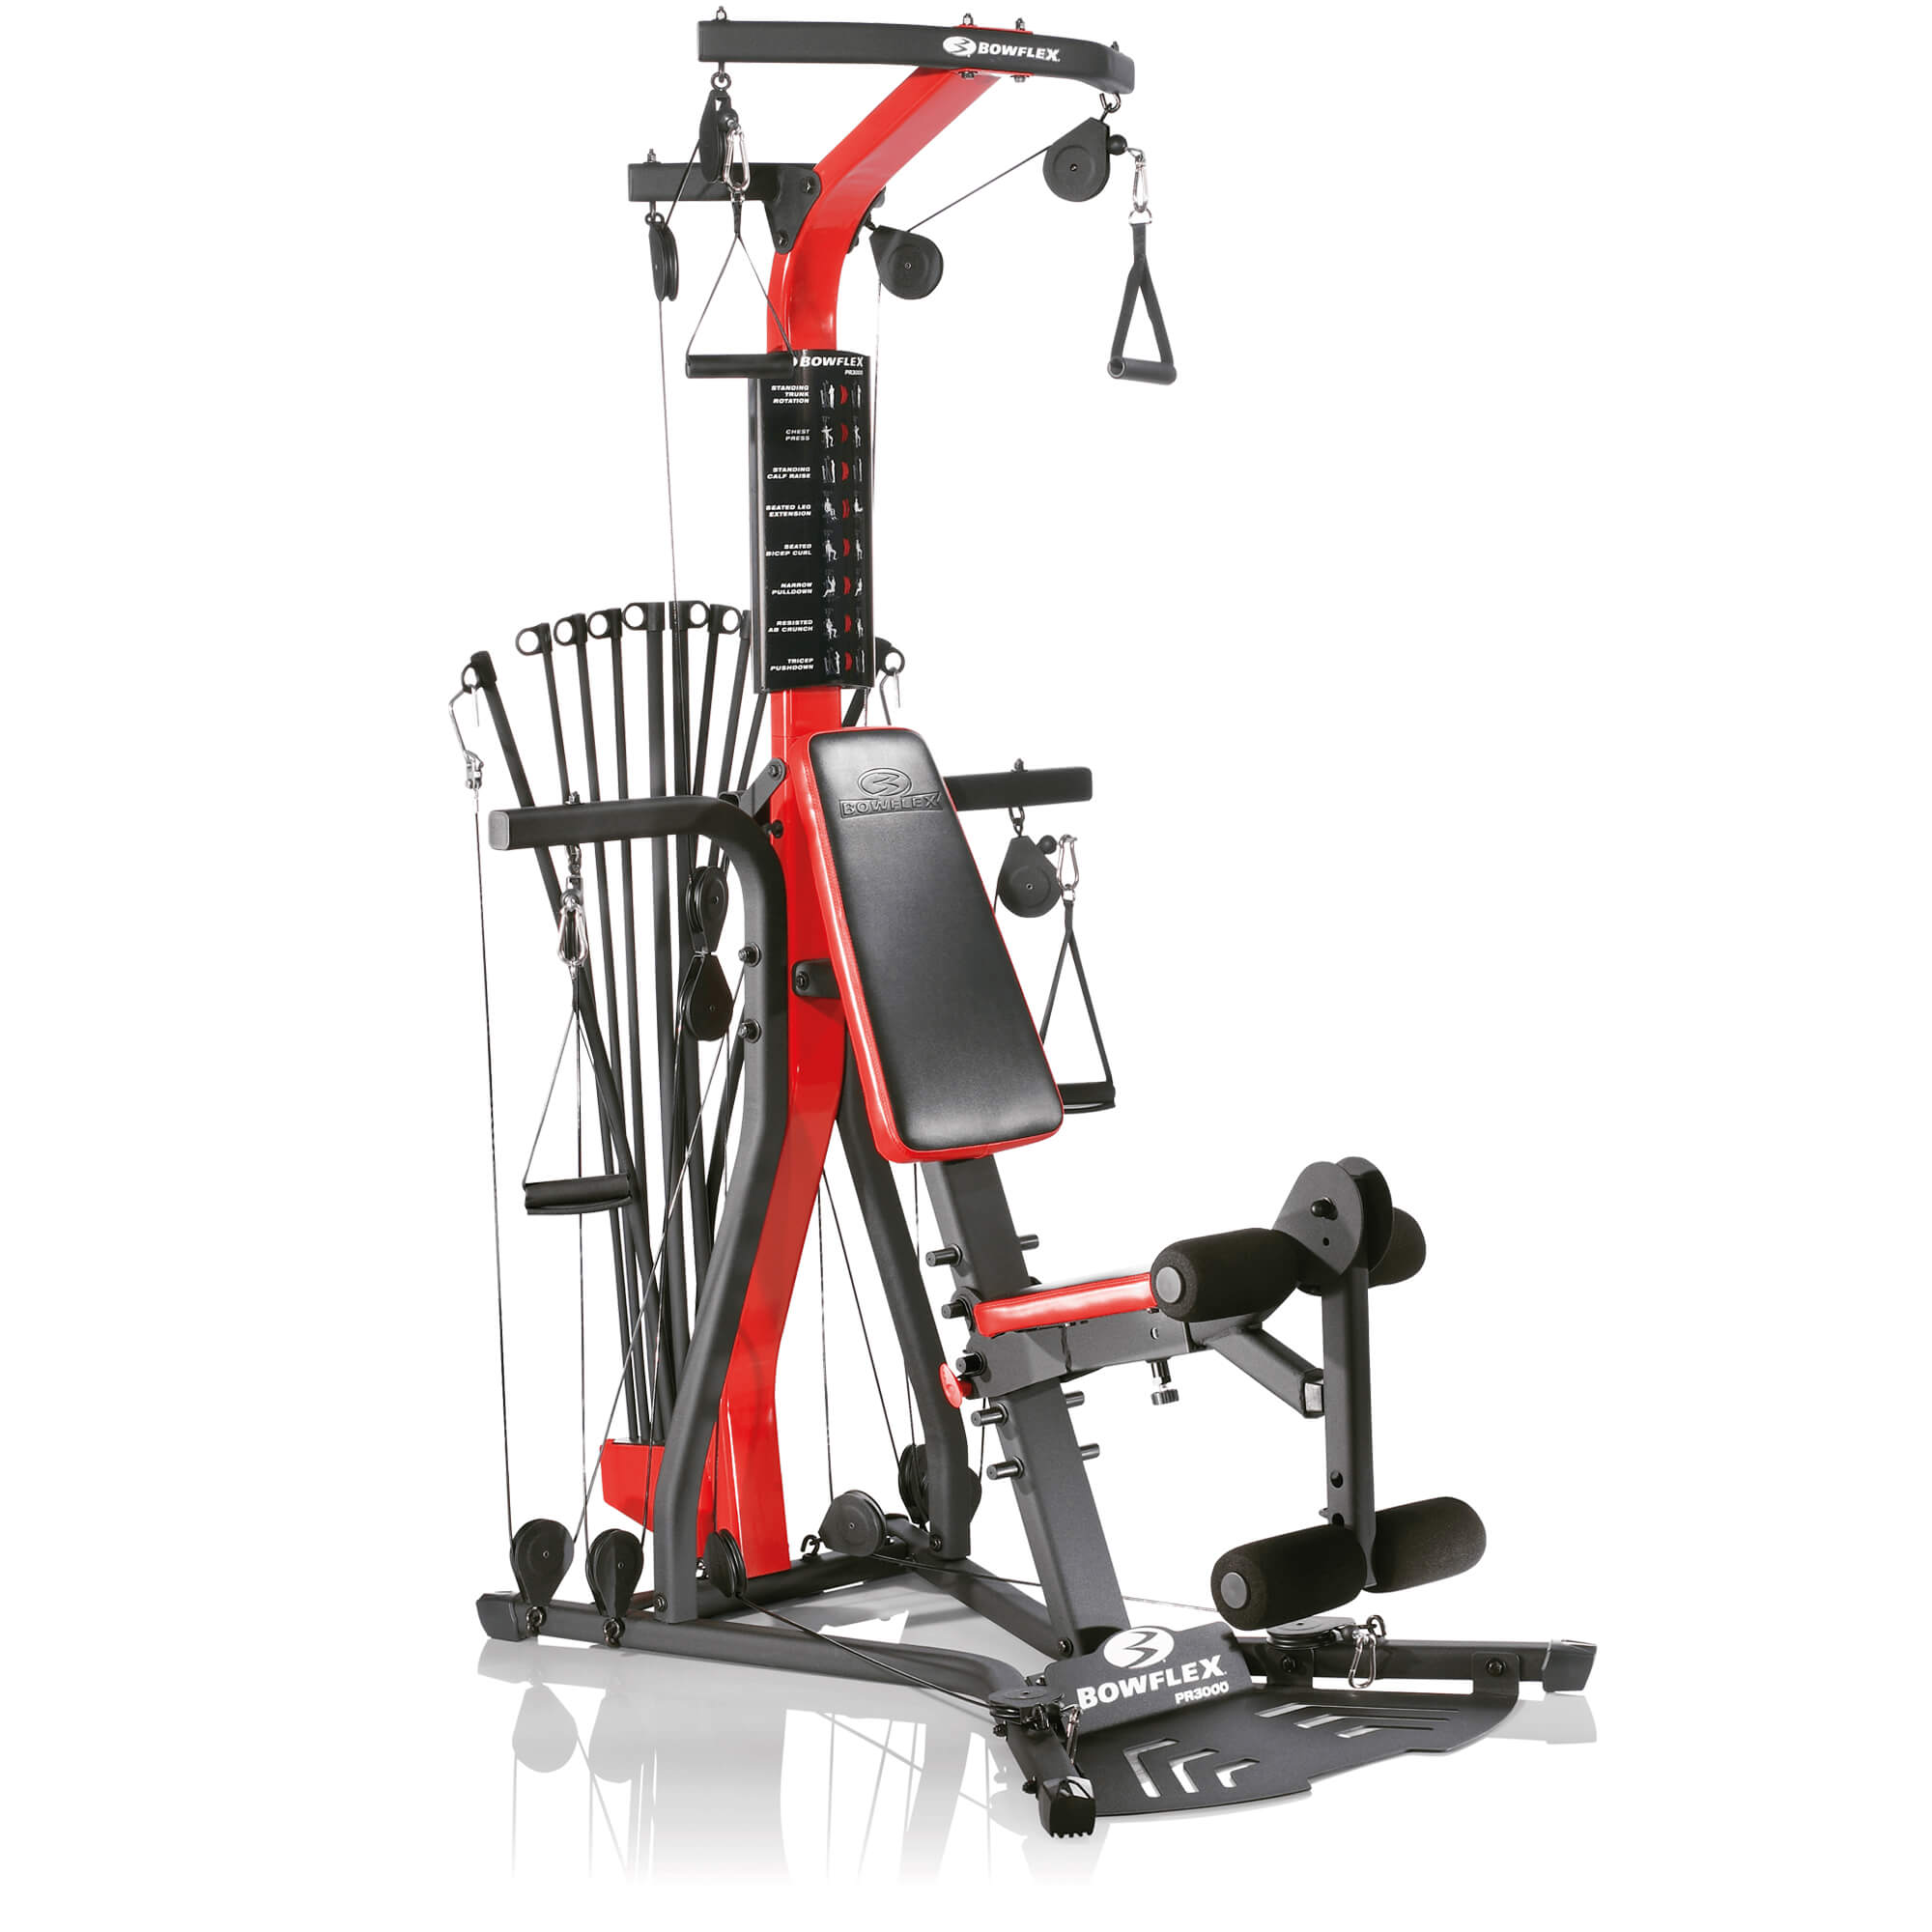 Excellent Bowflex Pr3000 Home Gym Bowflex Ocoug Best Dining Table And Chair Ideas Images Ocougorg